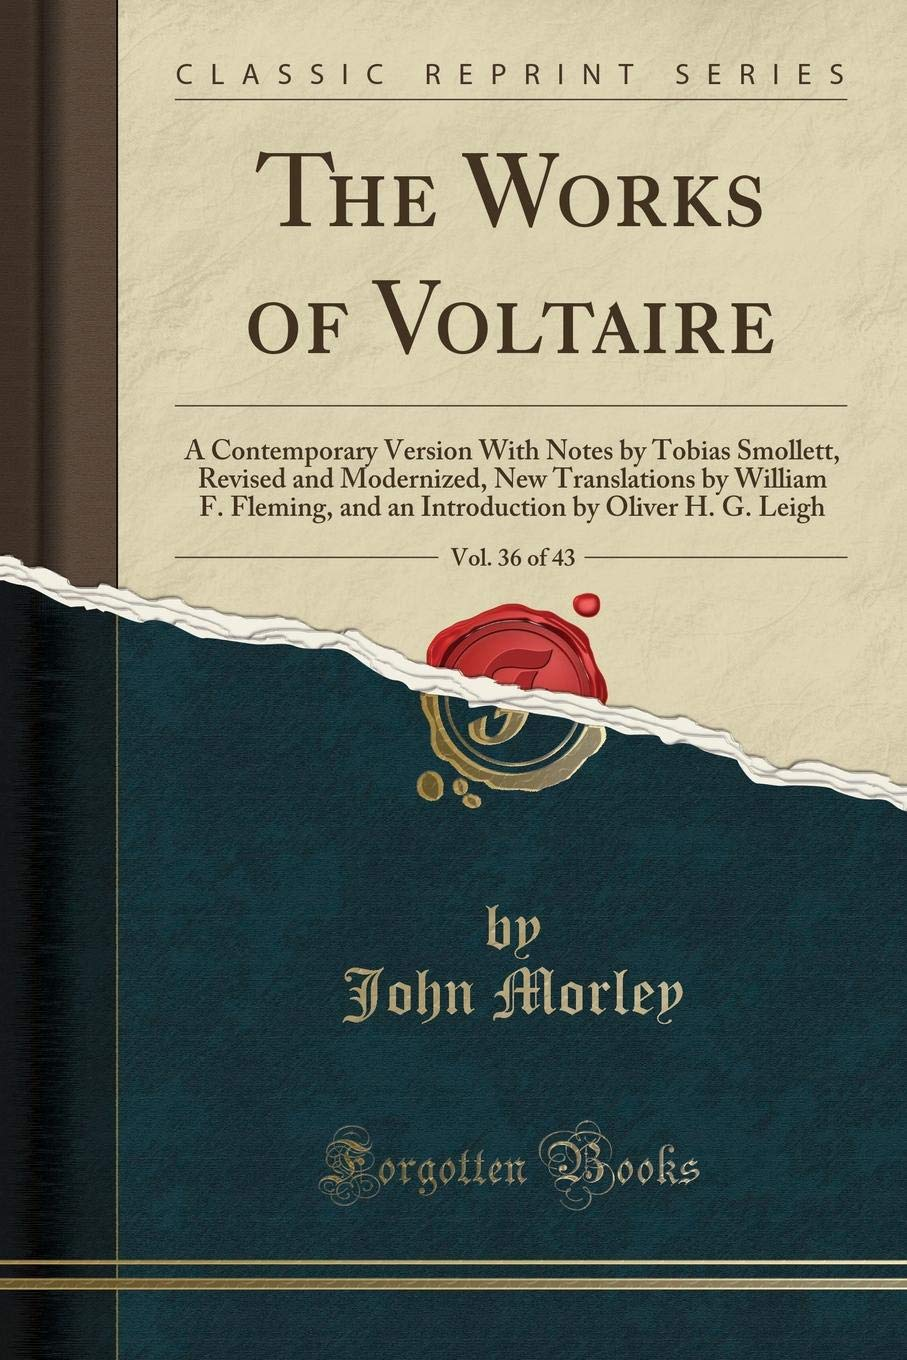 Download The Works of Voltaire, Vol. 36 of 43: A Contemporary Version With Notes by Tobias Smollett, Revised and Modernized, New Translations by William F. ... by Oliver H. G. Leigh (Classic Reprint) ebook